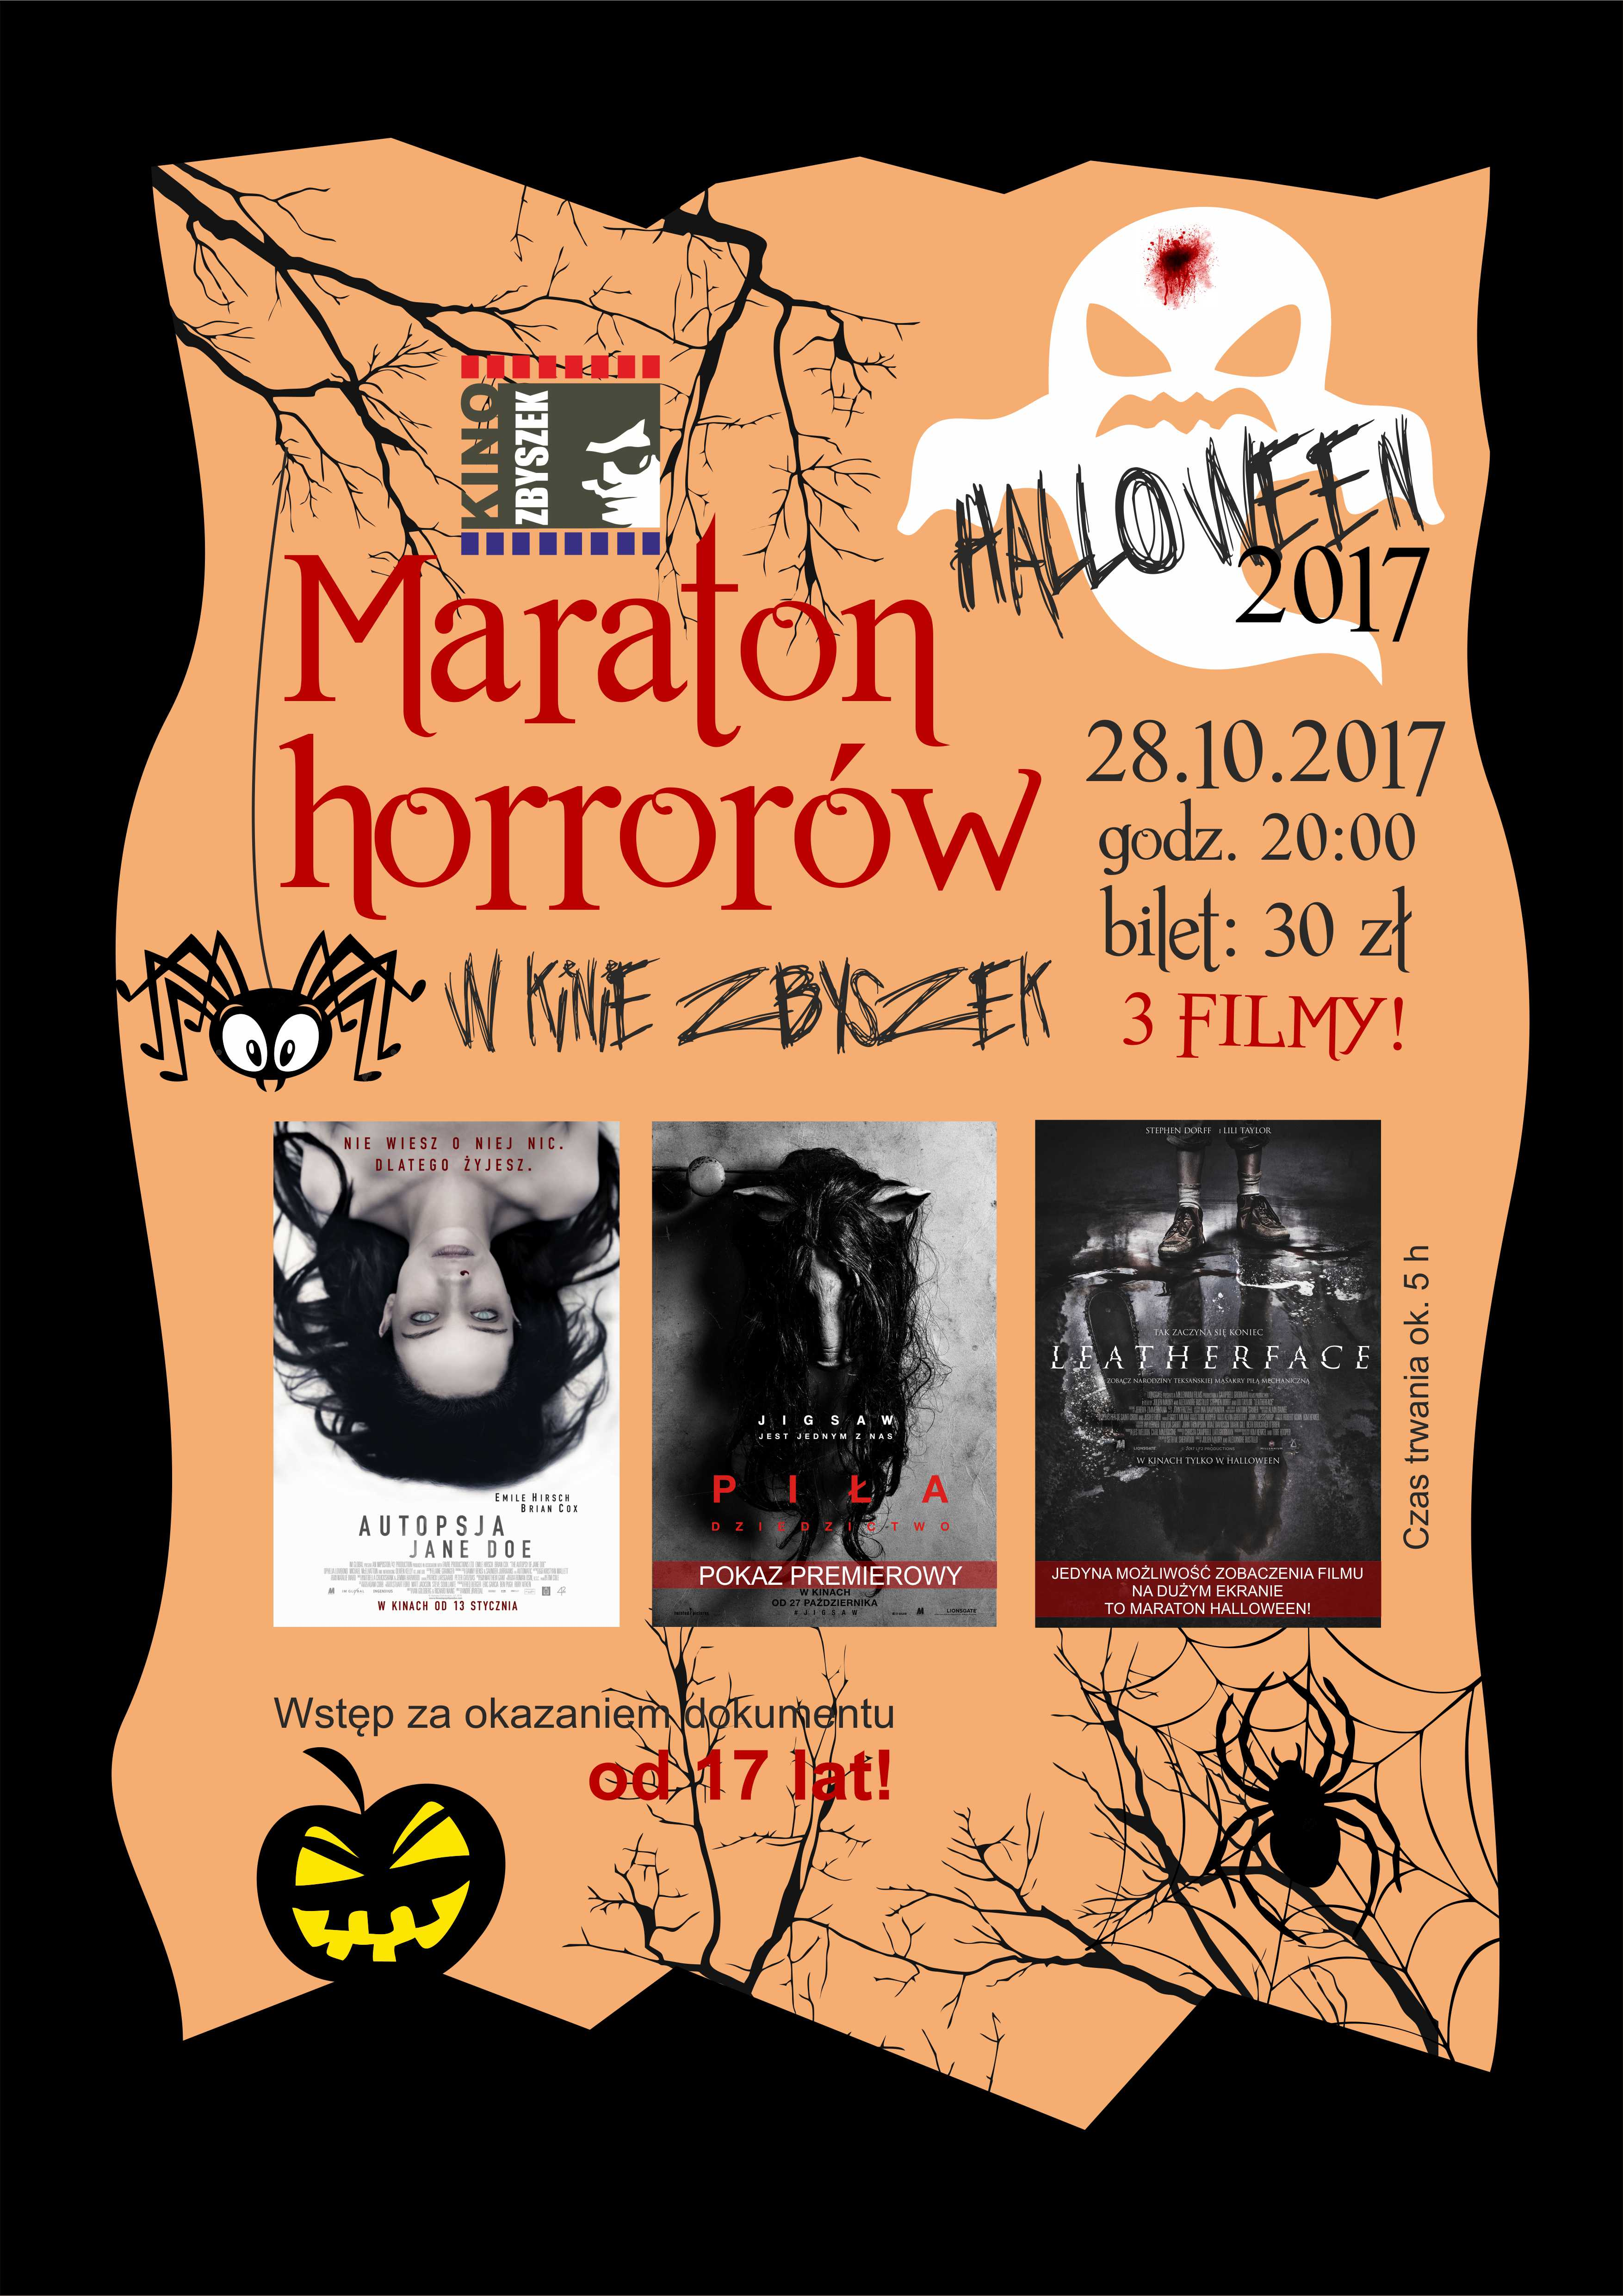 maraton horrorow 2017 plakat